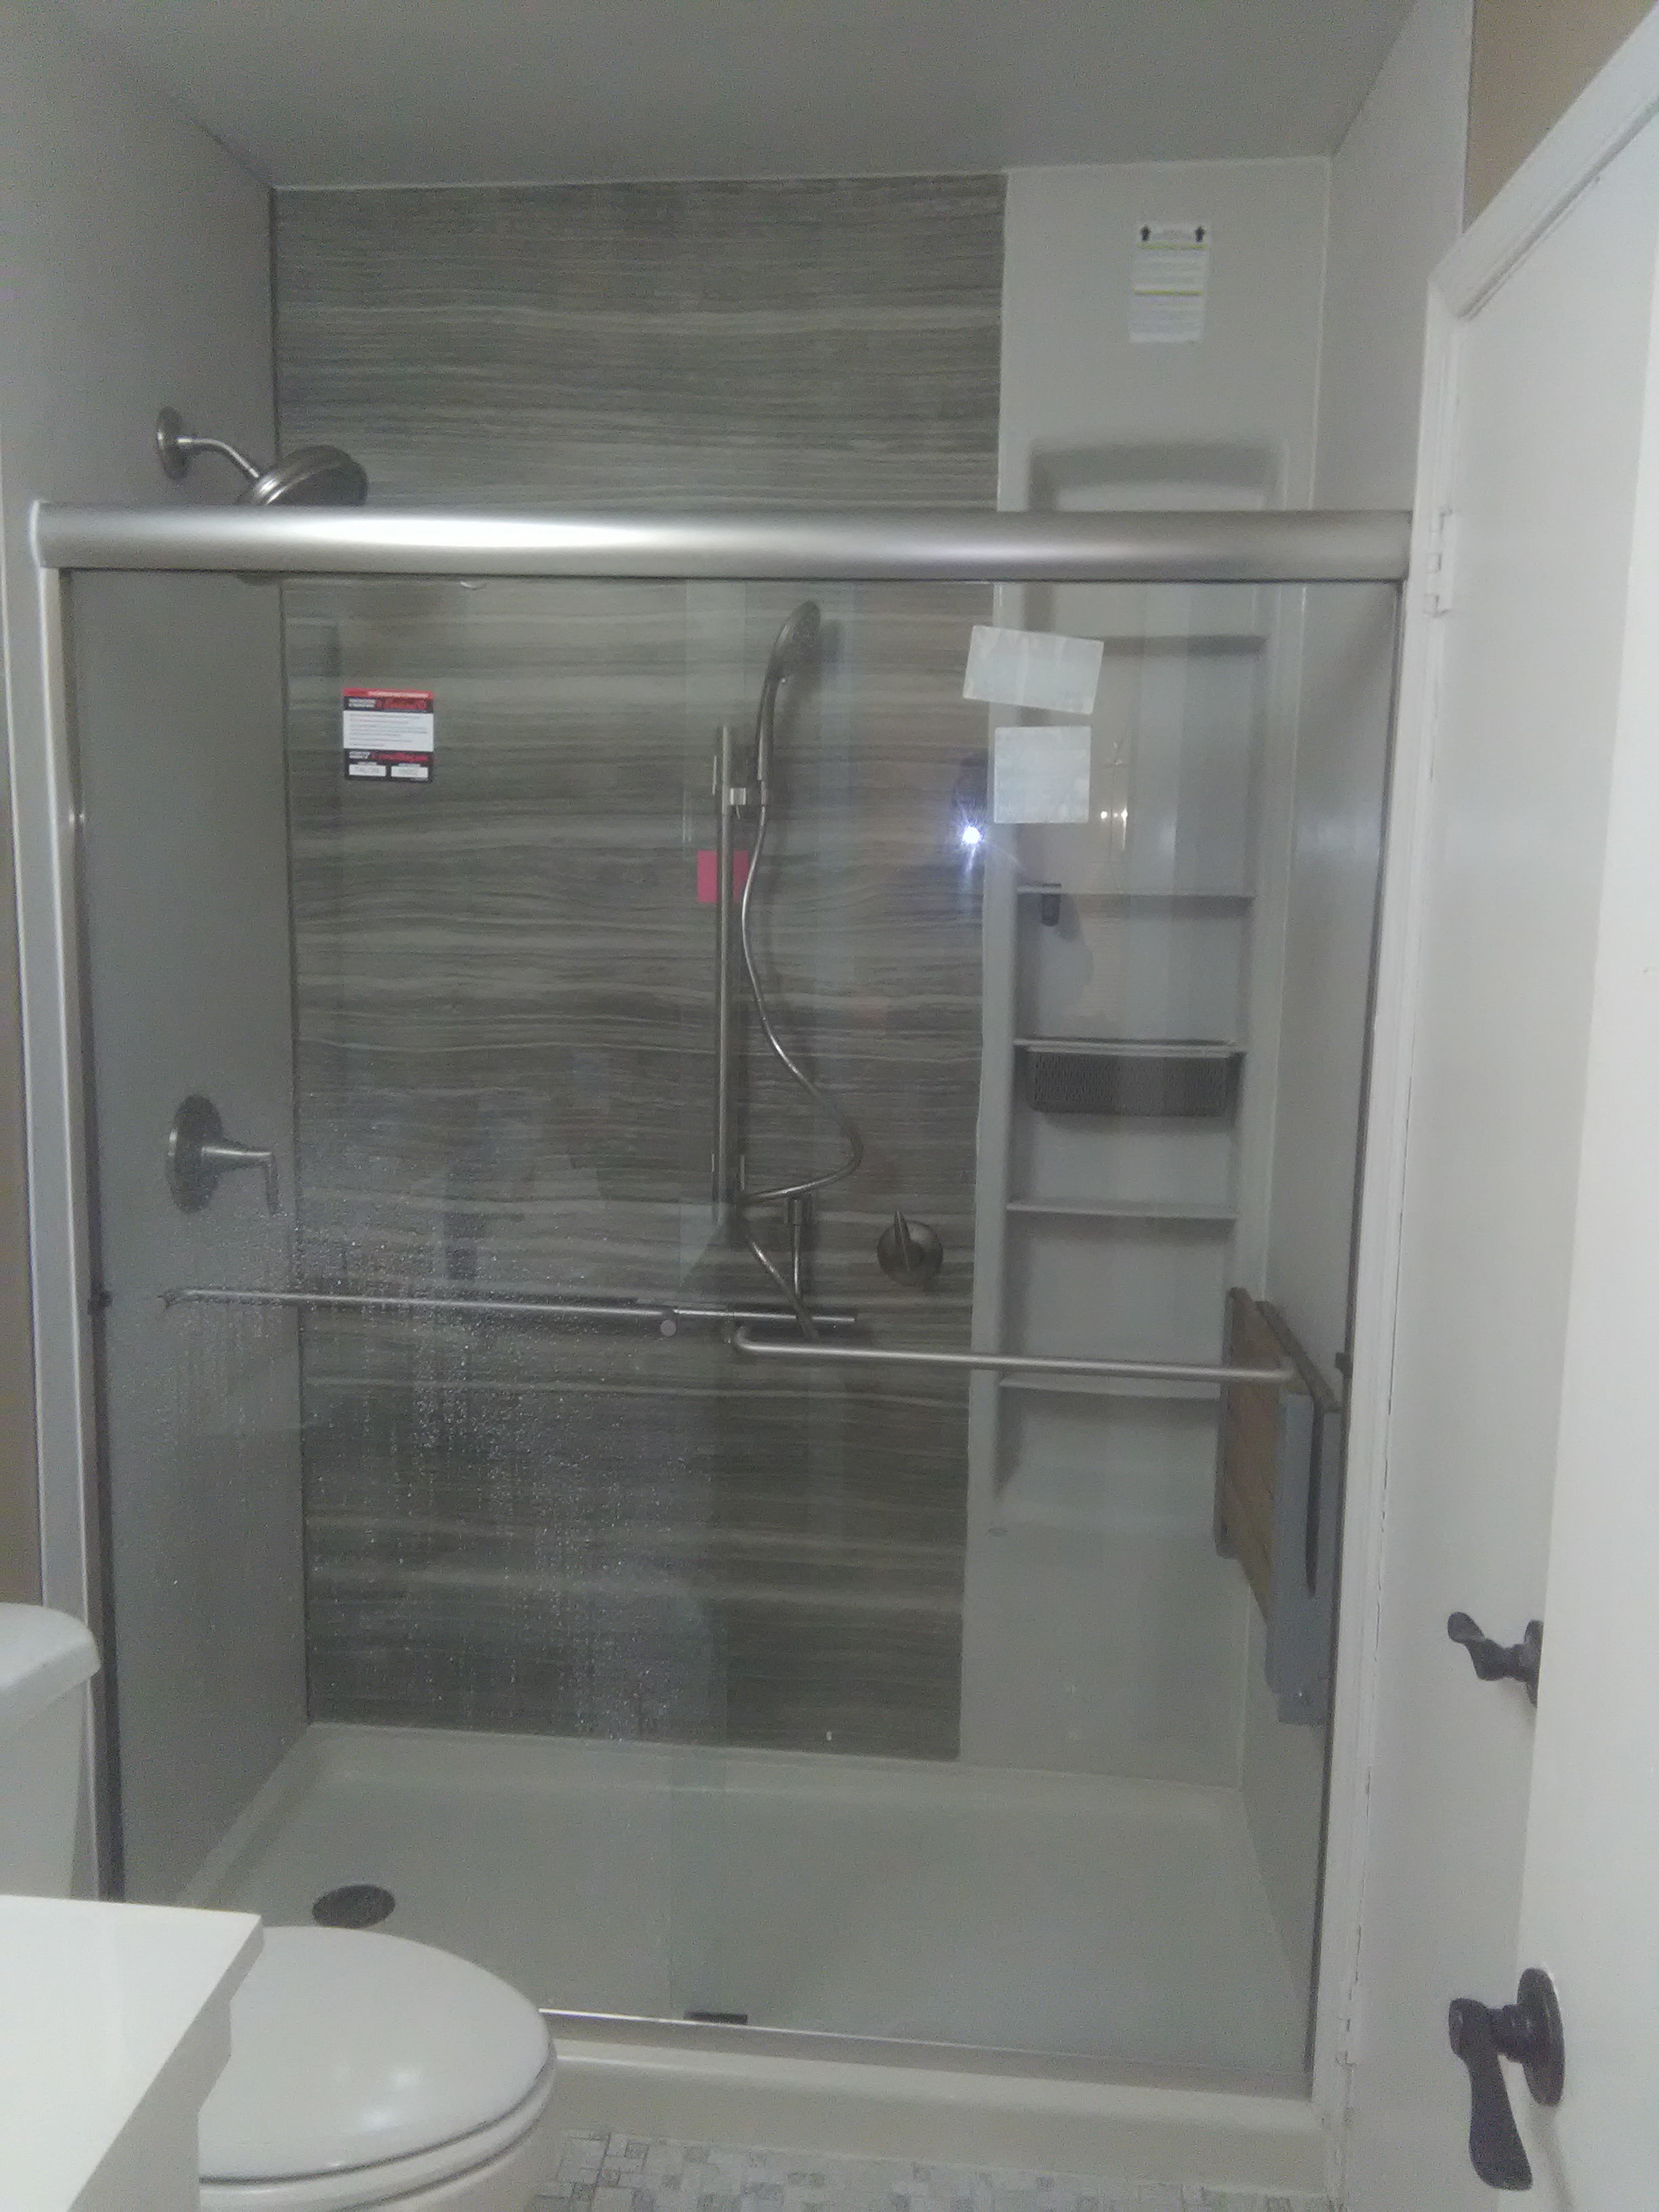 Shower Remodel, Acrylic & Kohler Options | Home Smart